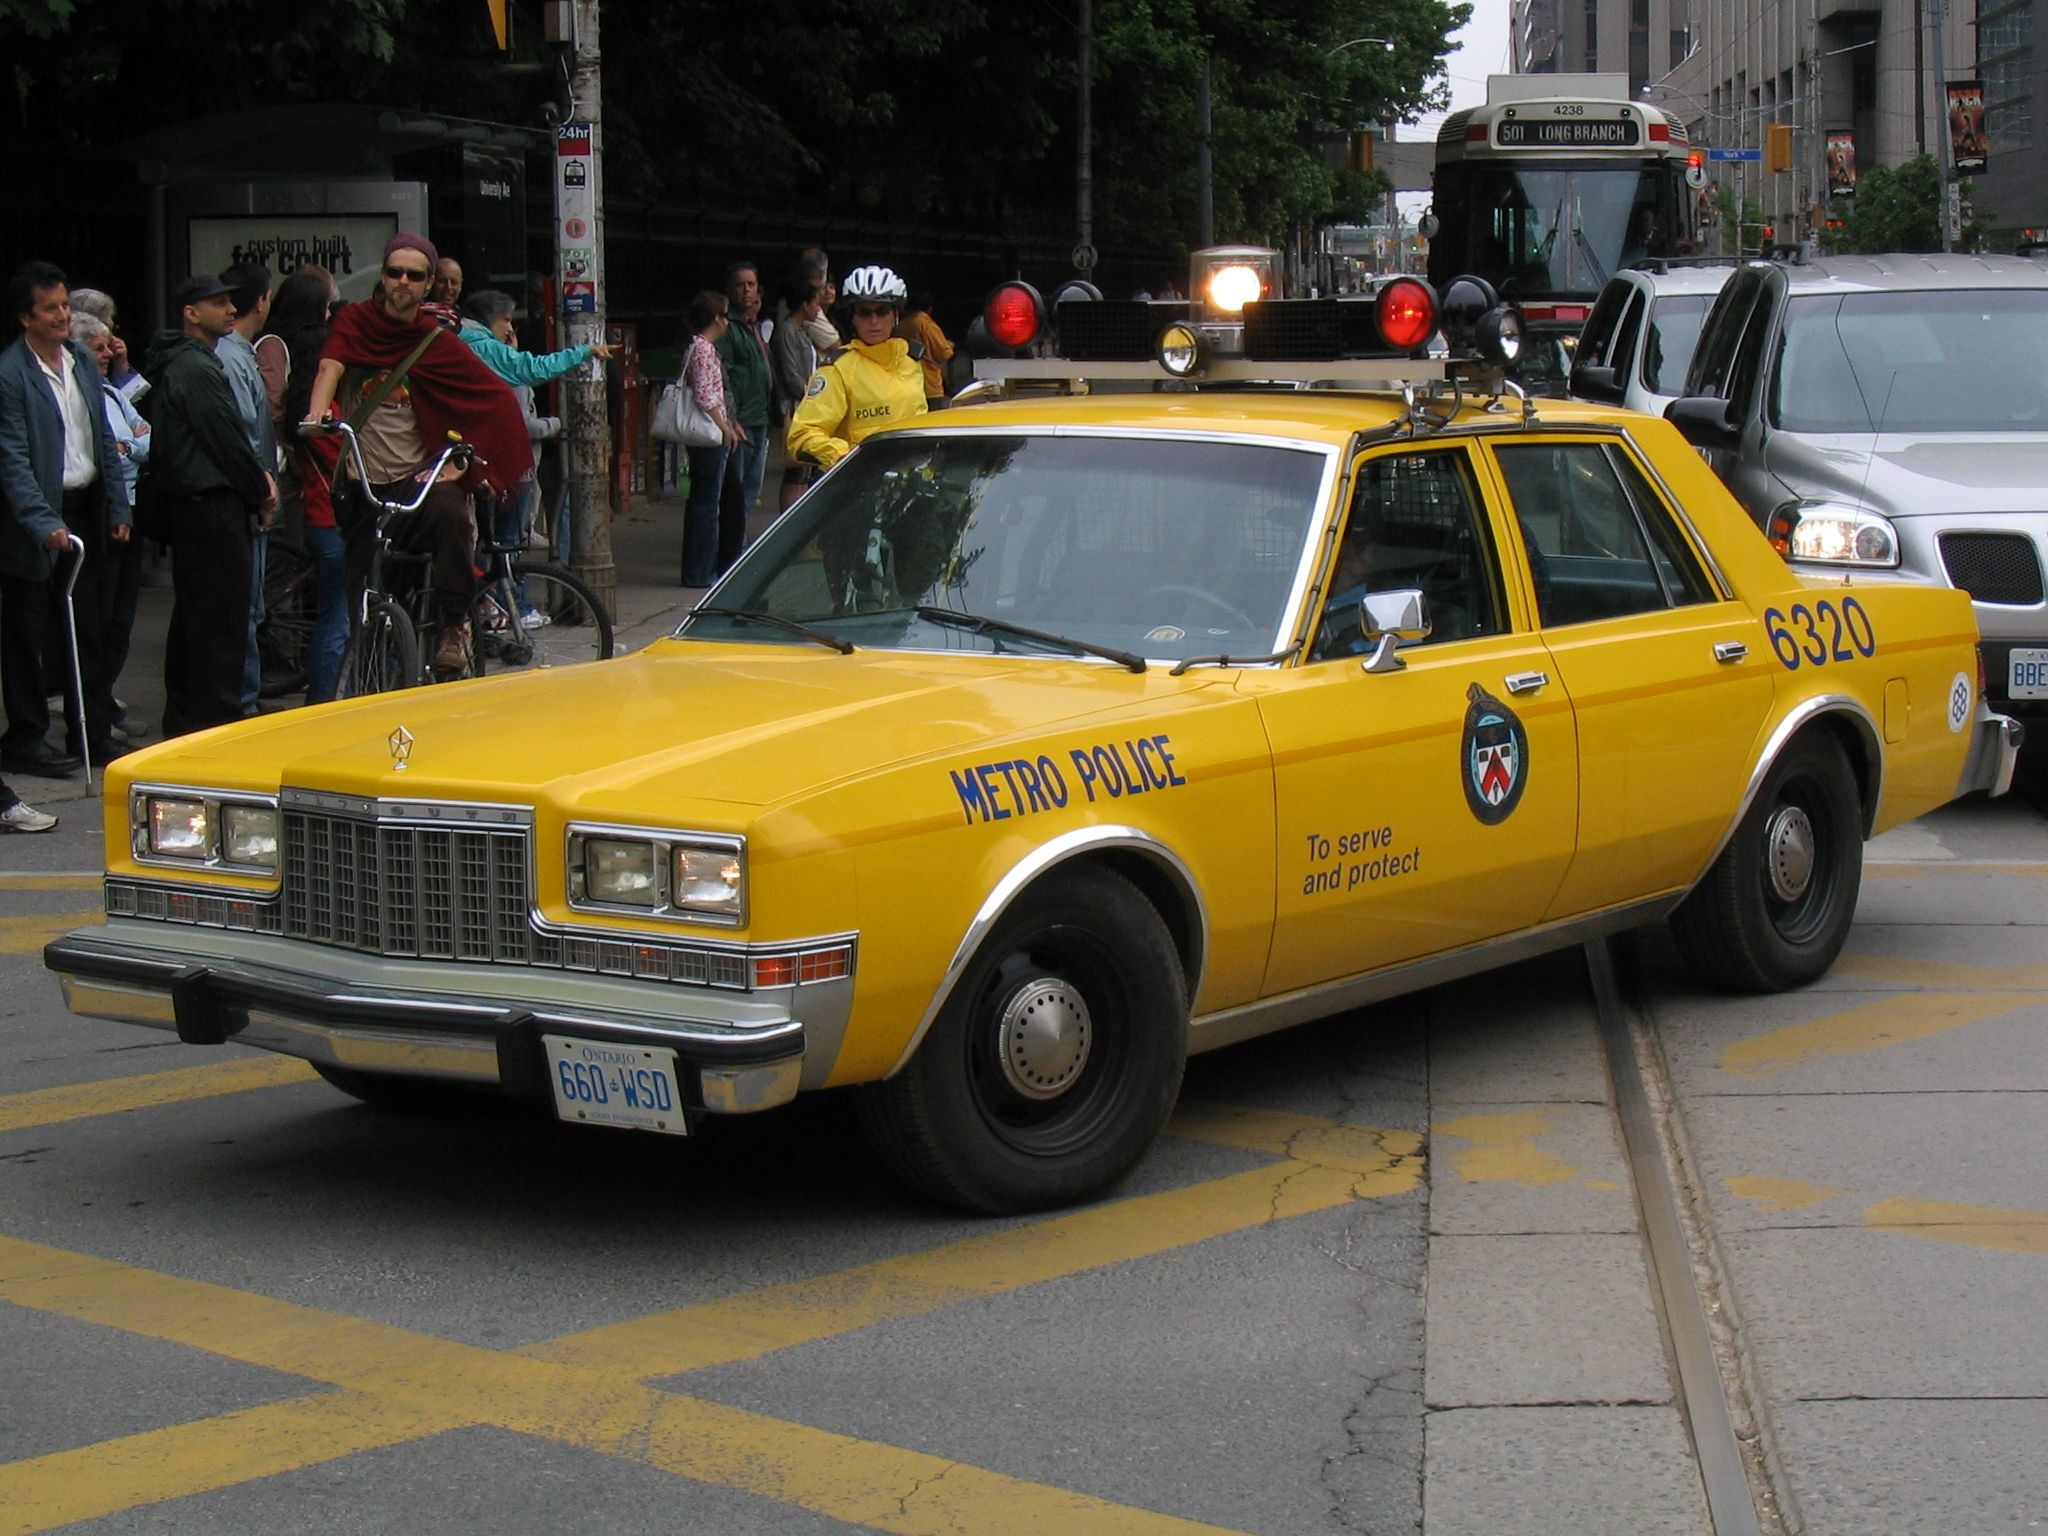 Police Car Auction Toronto >> Toronto Police Car 1980 S In 2019 Police Cars Police